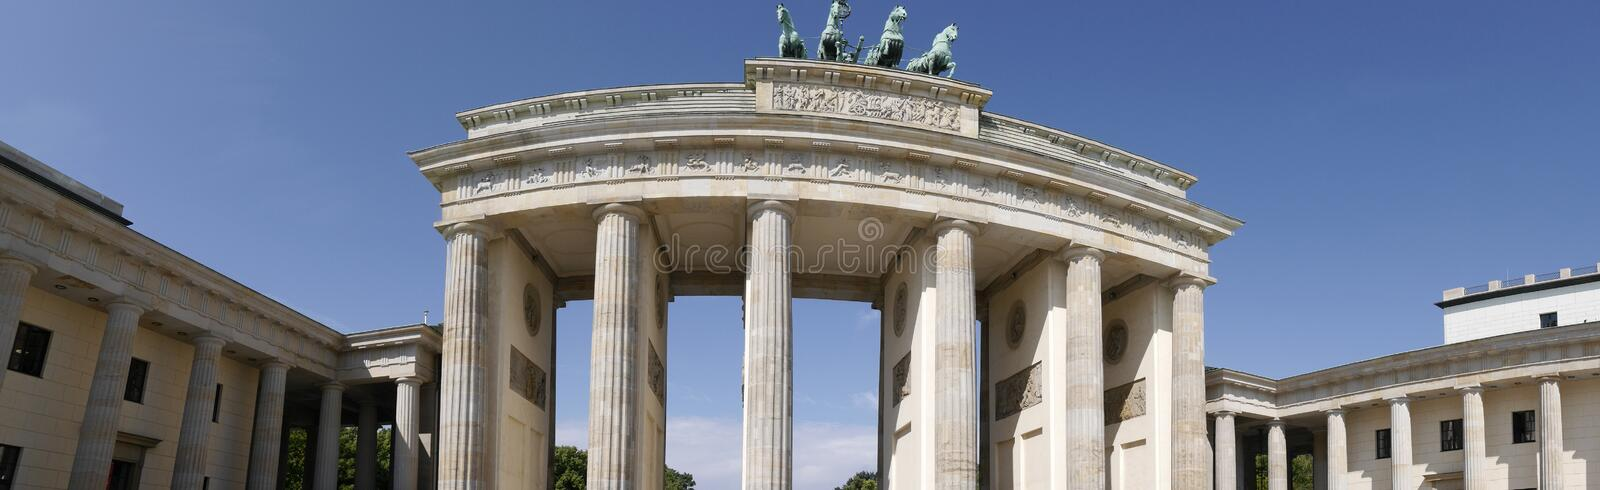 The Brandenburg Gate is Berlin`s most famous landmark. A symbol of Berlin and German division during the Cold War stock image